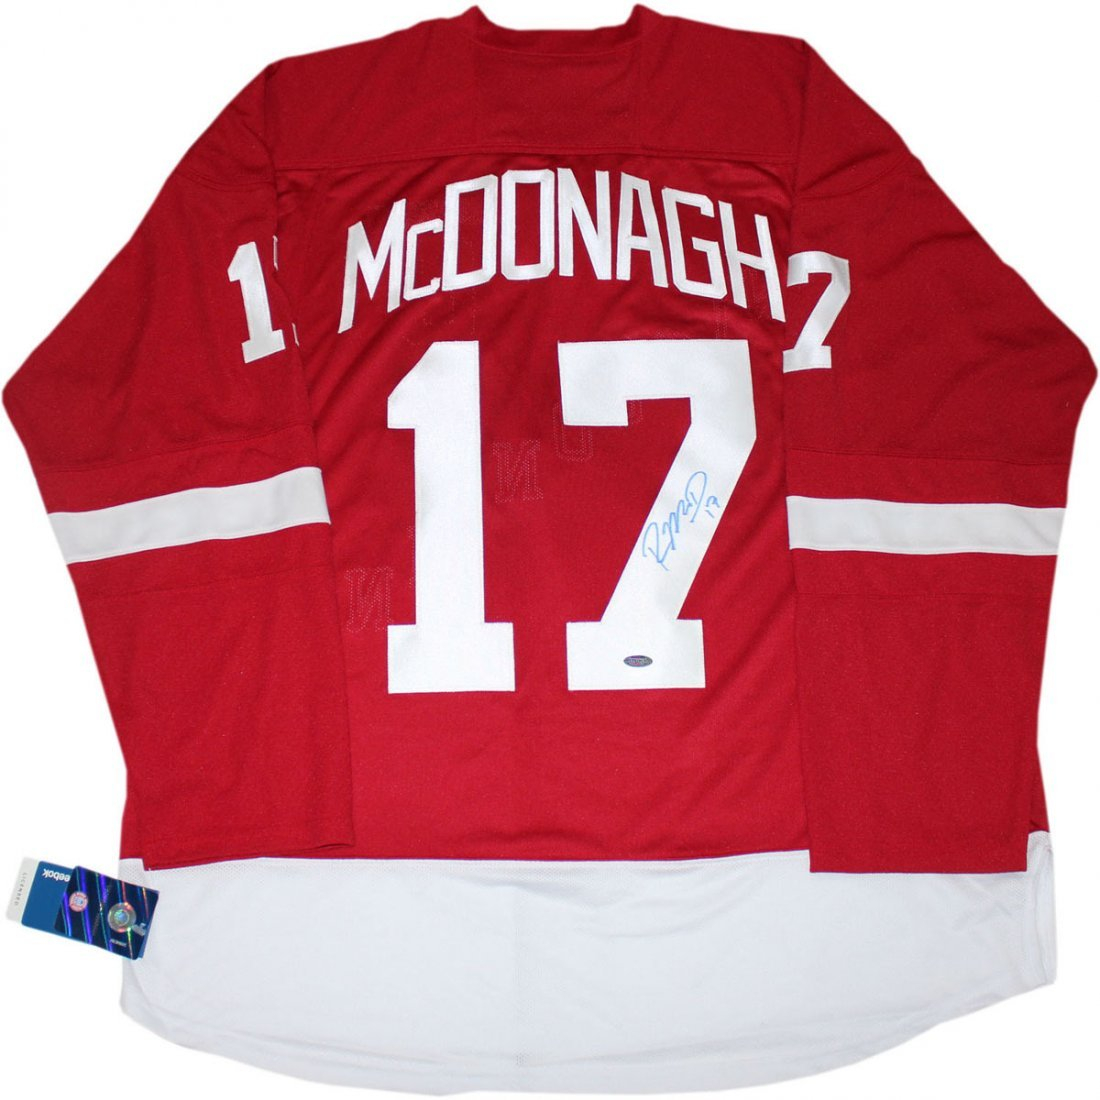 Ryan McDonagh Signed Red Wisconsin Hockey Jersey